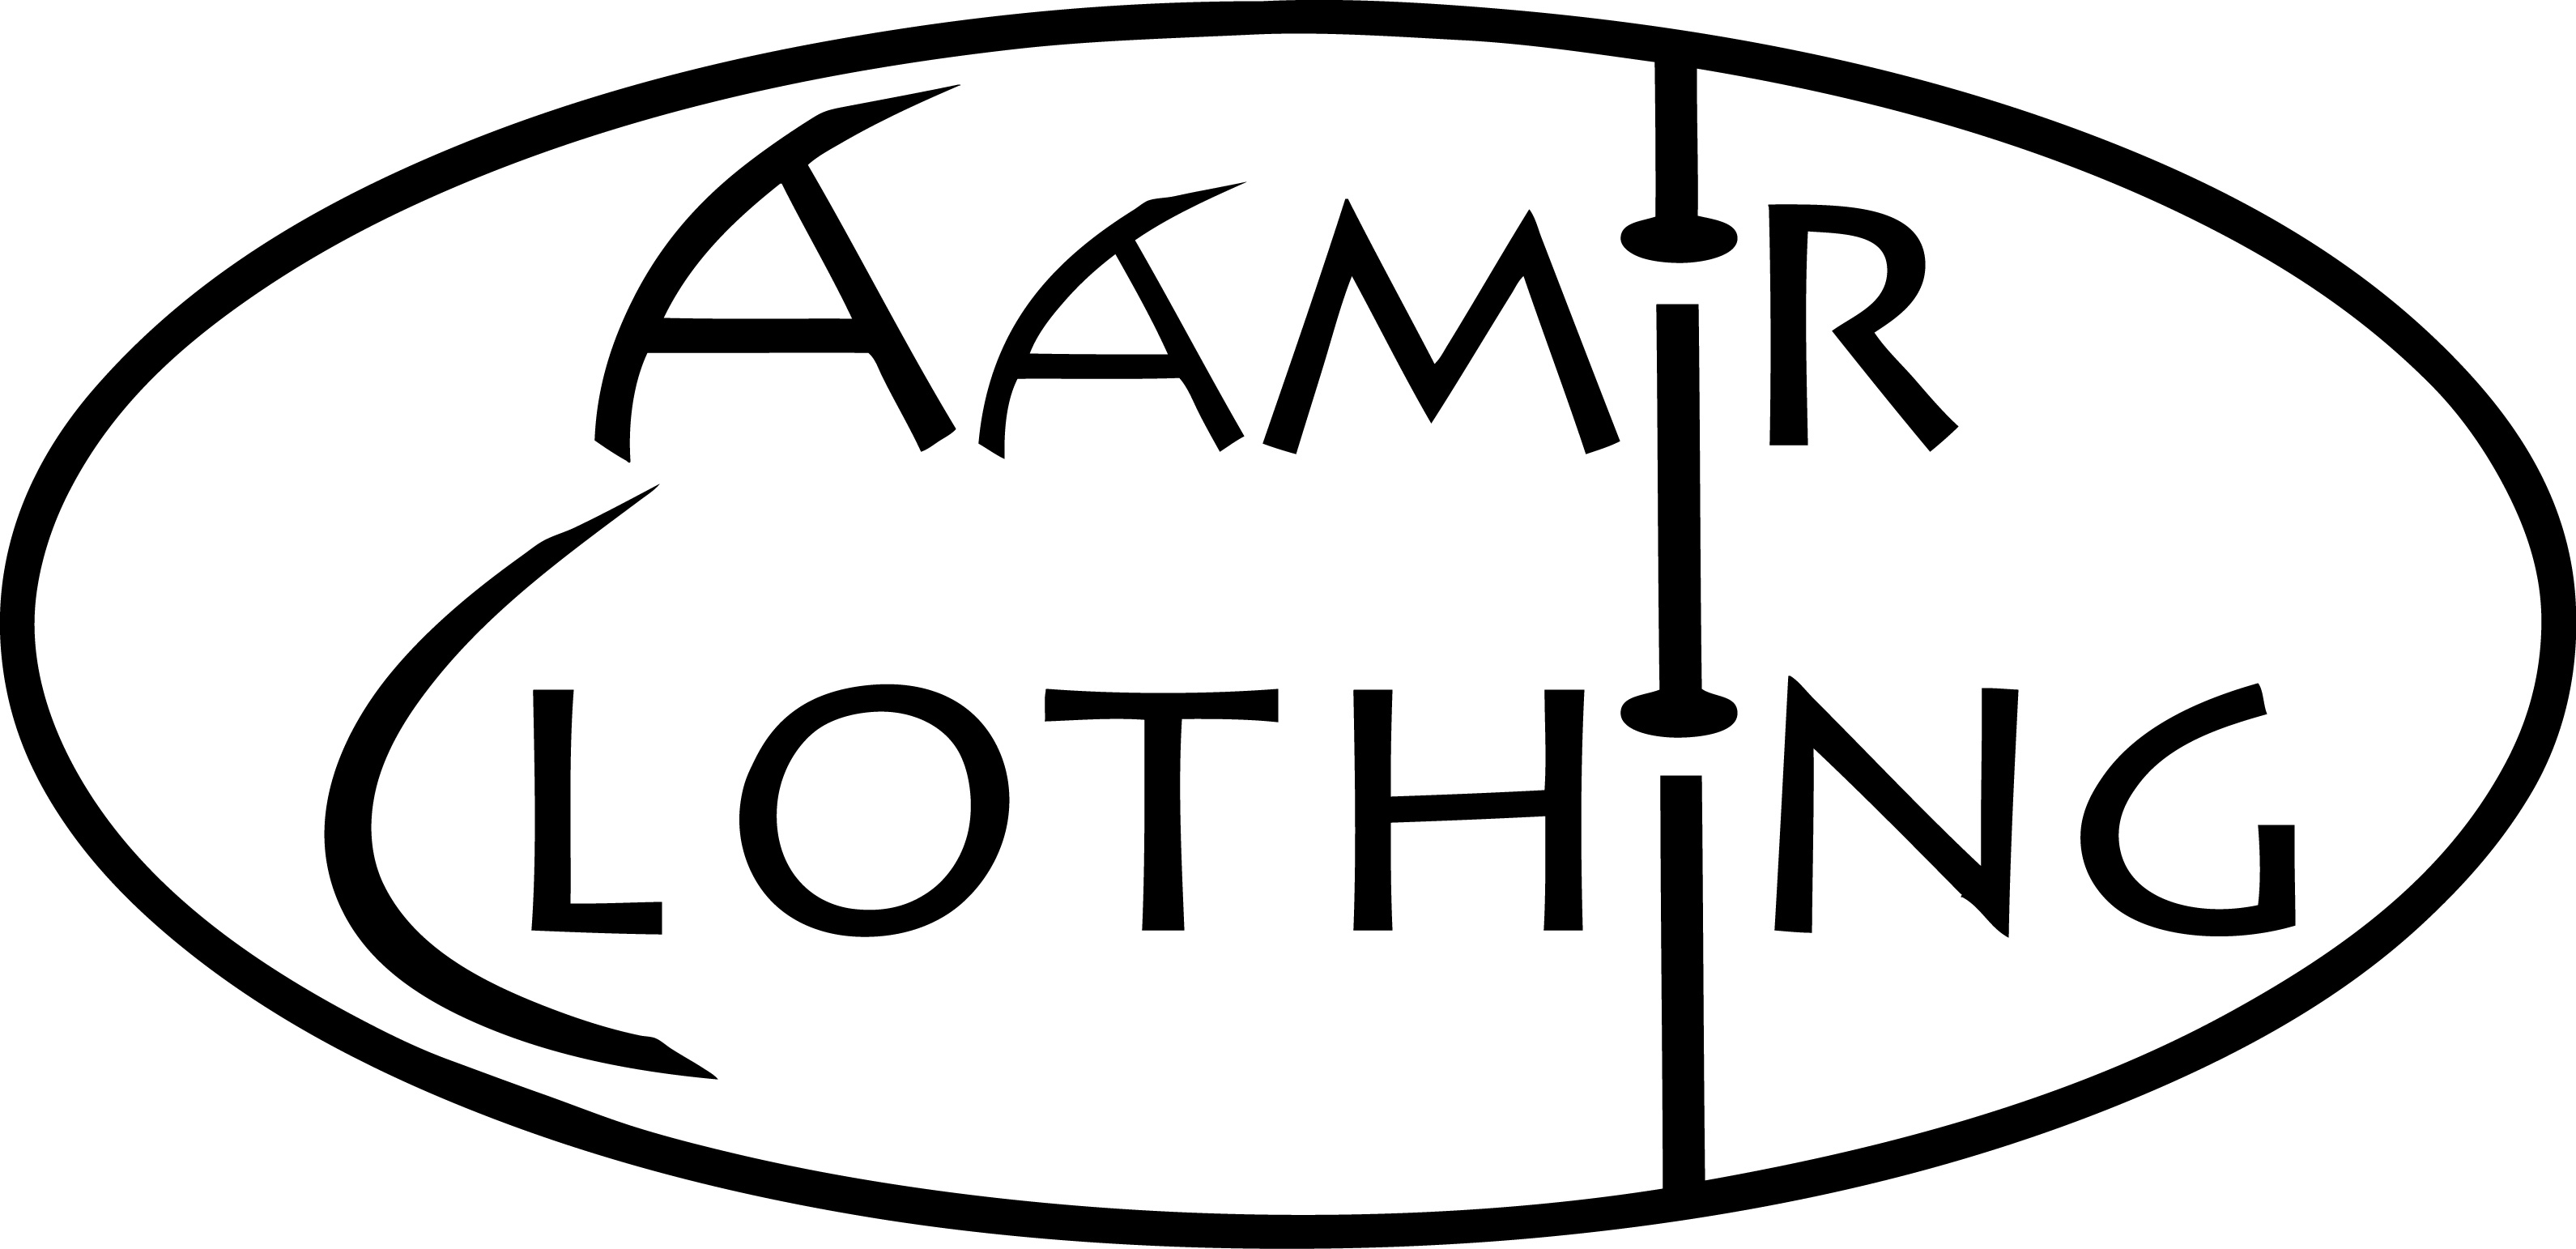 AAMIRE_CLOTHING_TWO